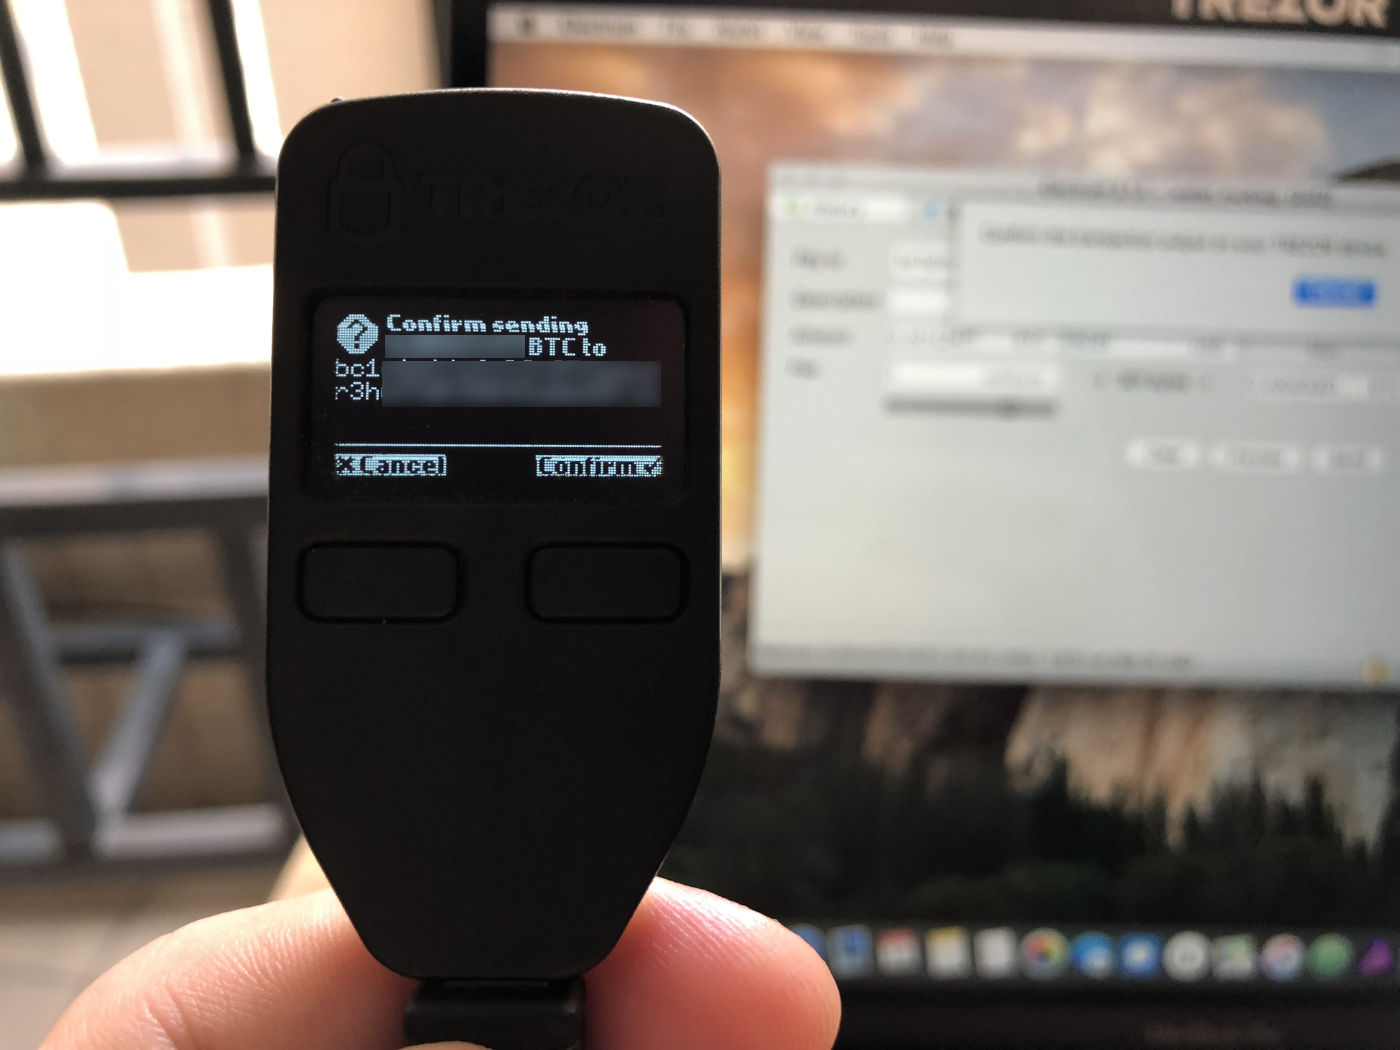 Confirming the transaction address on Trezor.